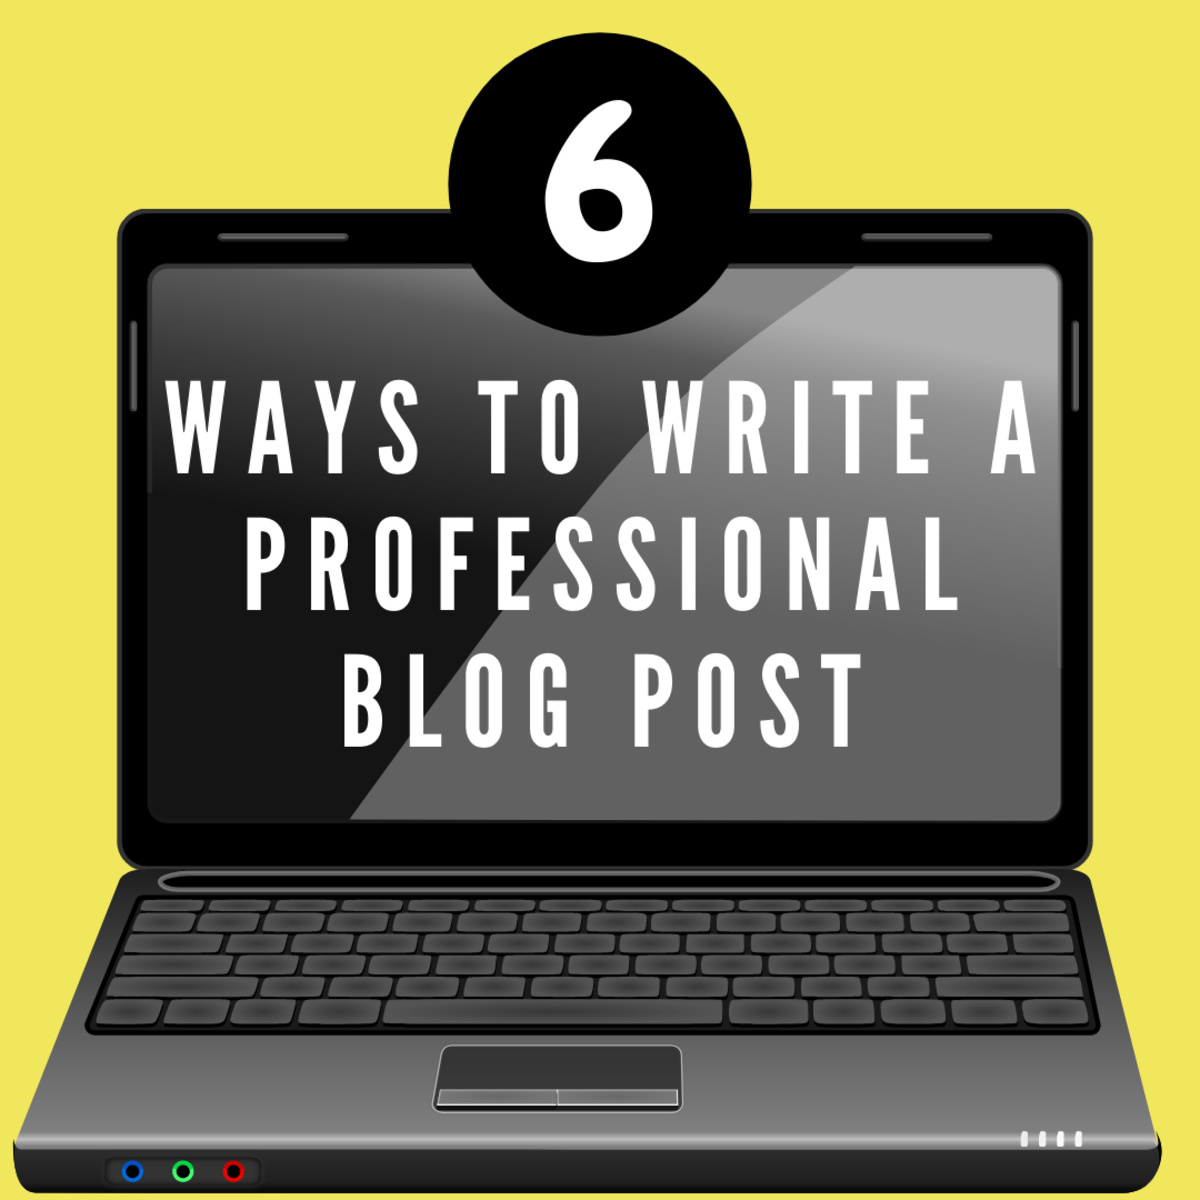 How to write a professional blog post?